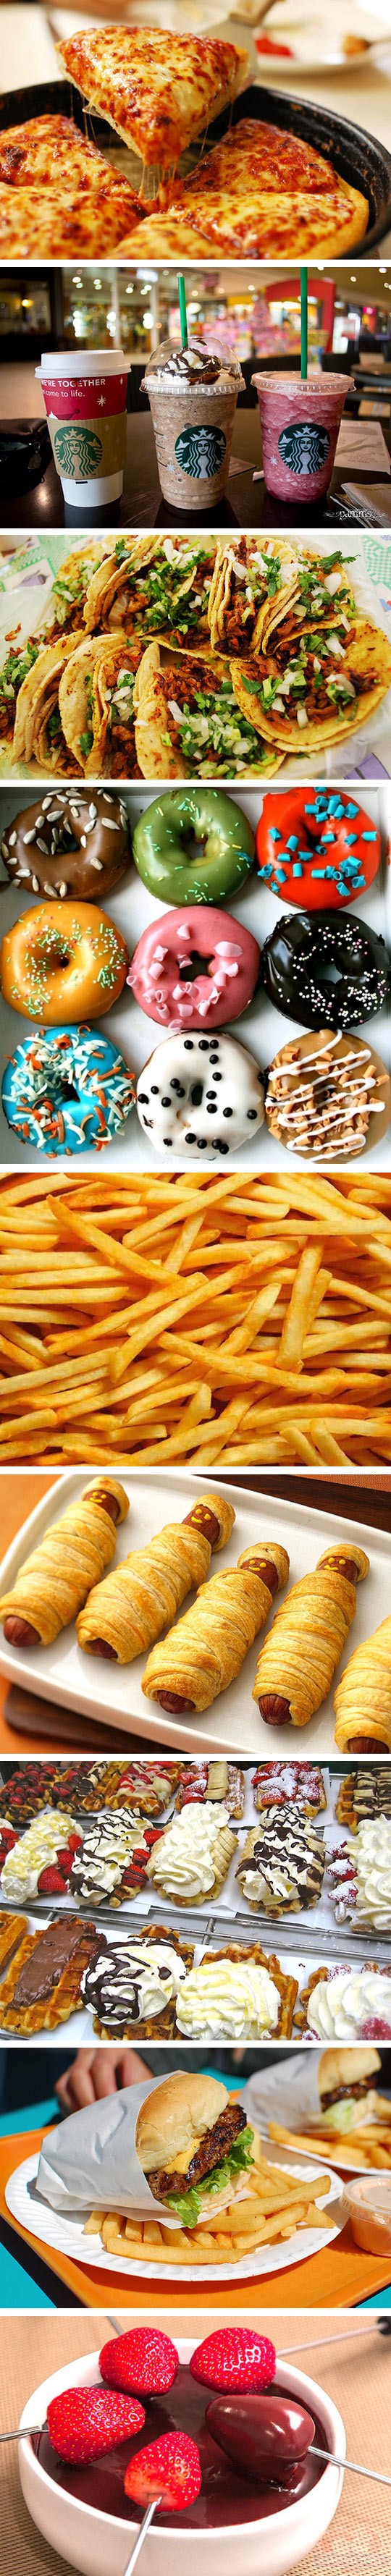 funny-food-pizza-latte-fries-burger